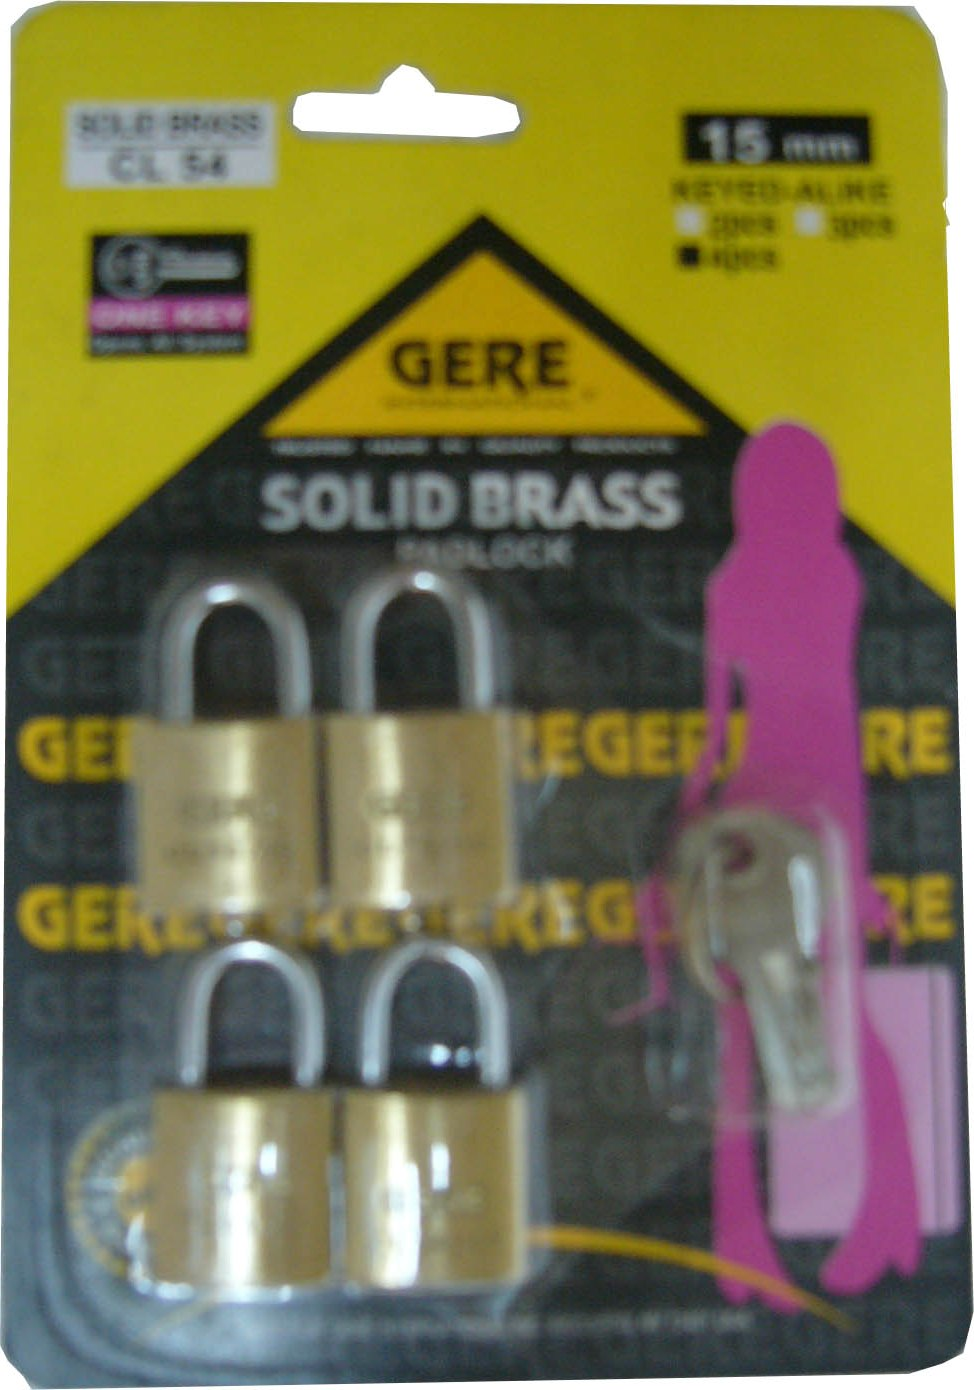 15MM*4PCS CL54152 GERE LUGGAGE LOCK